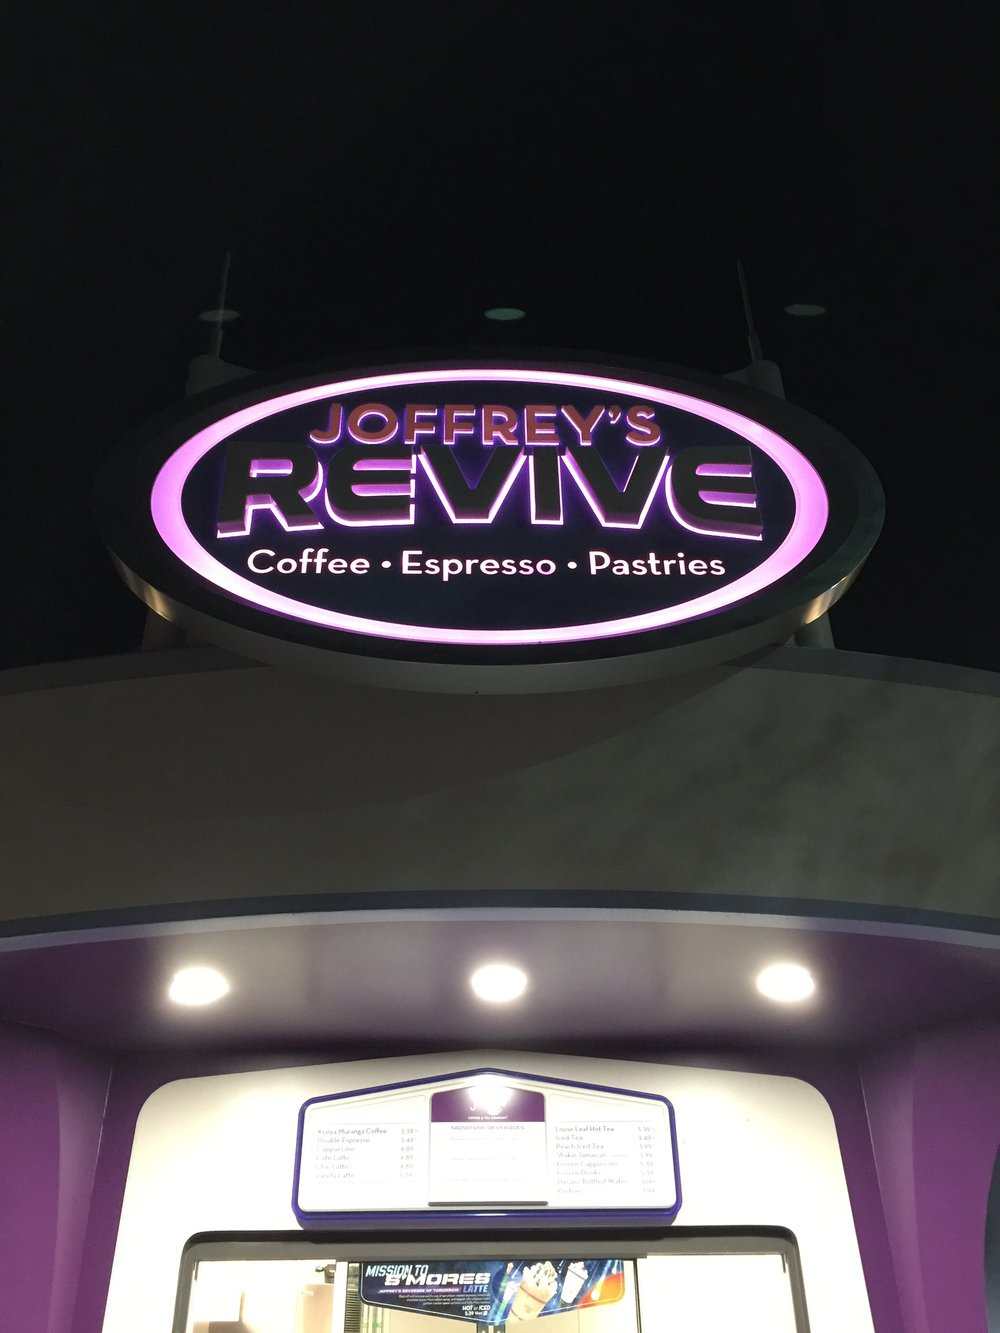 Joffrey's Revive is located in Tomorrowland near the dance party stage.